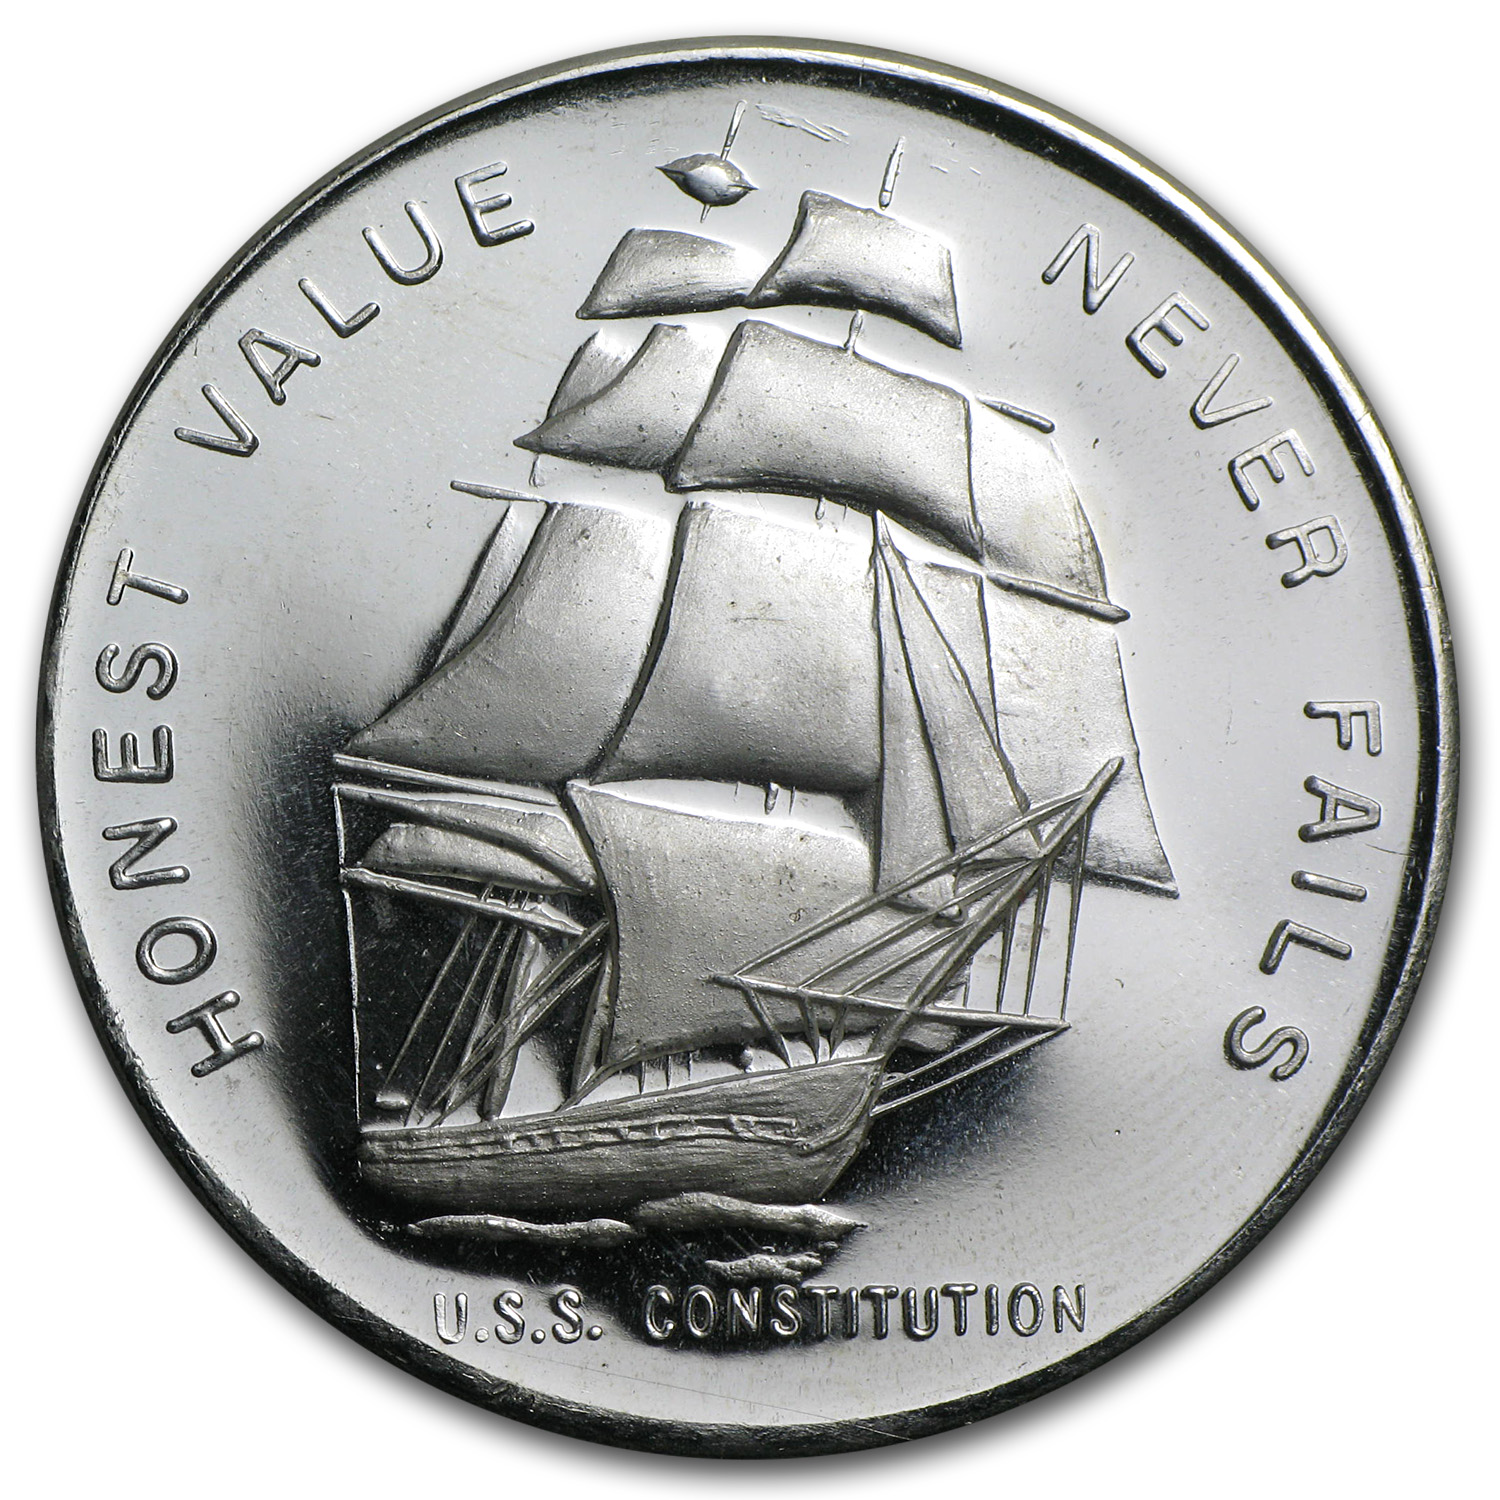 1 oz Silver Rounds - U.S.S. Constitution Ship